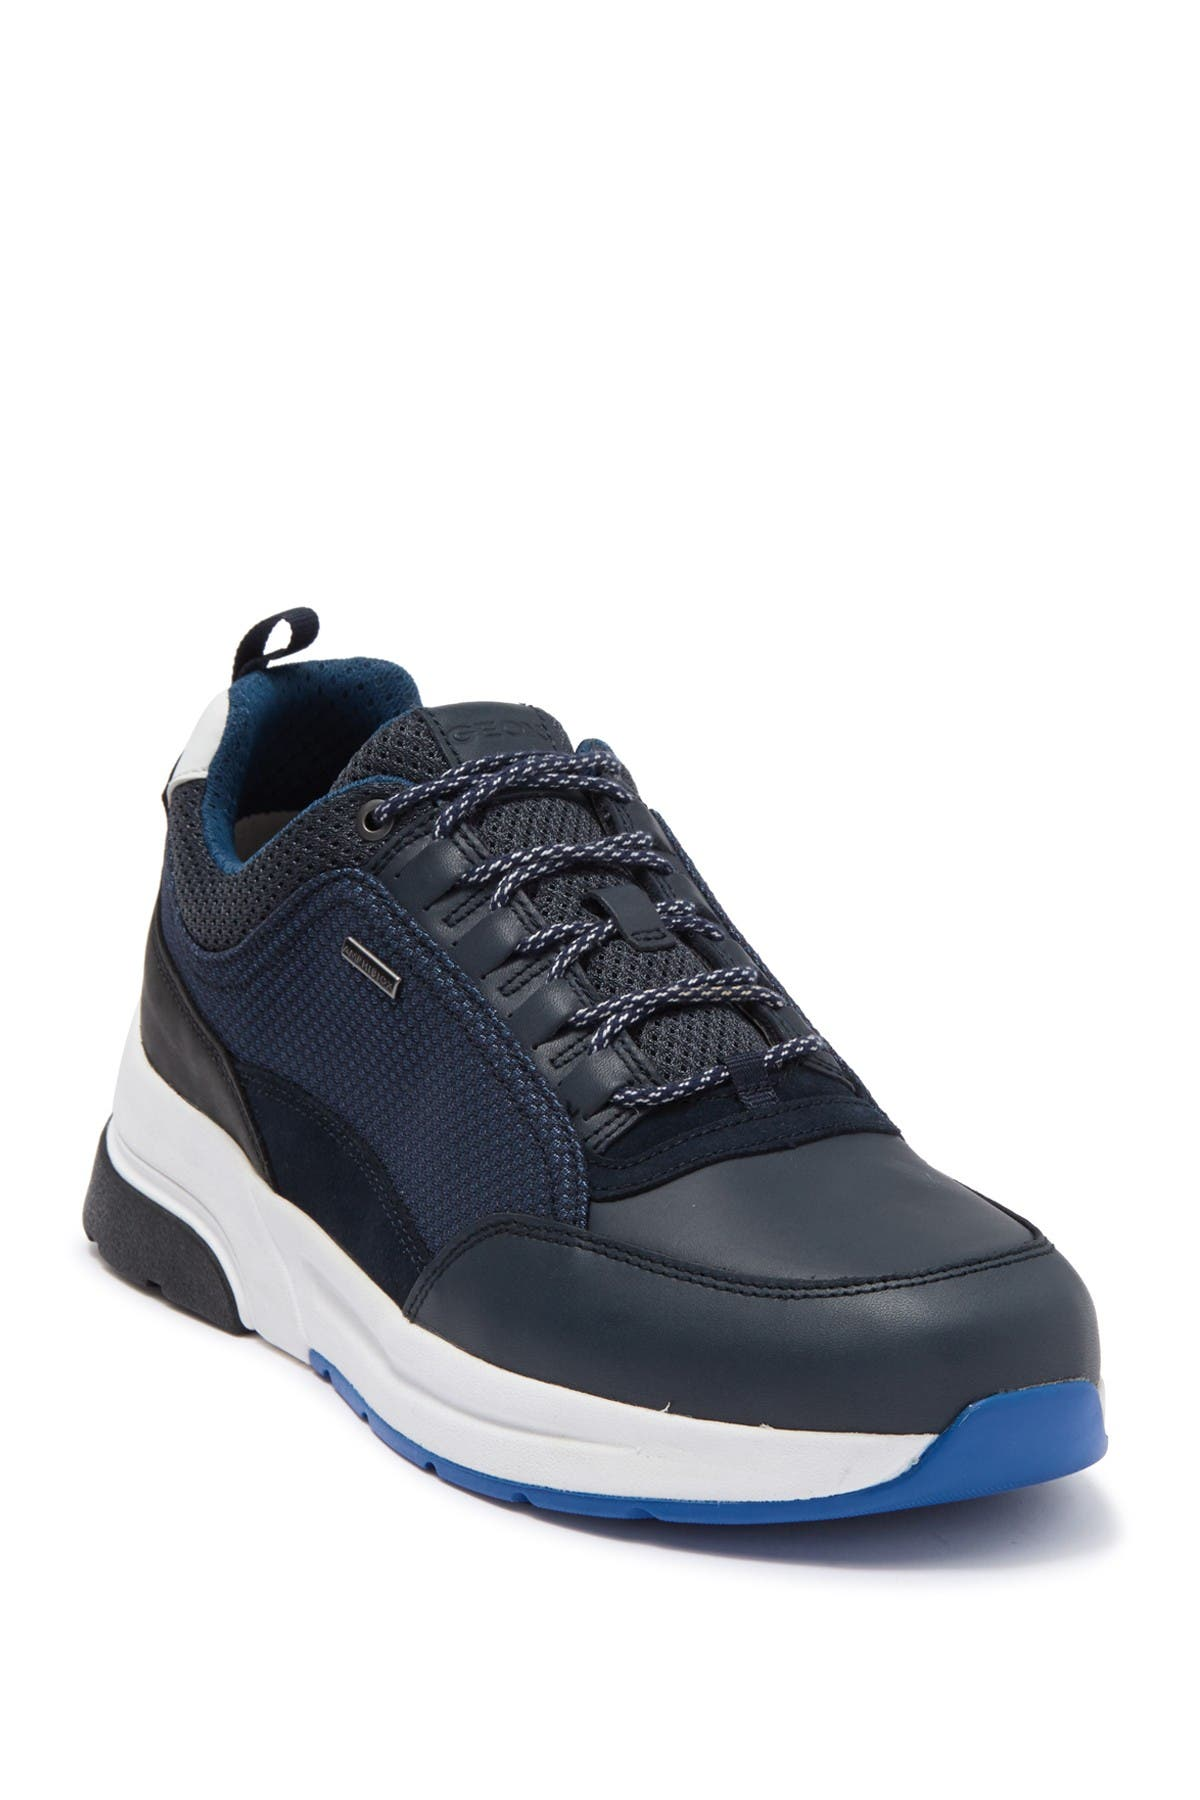 Image of GEOX Rockson Bab 3 Leather Sneaker